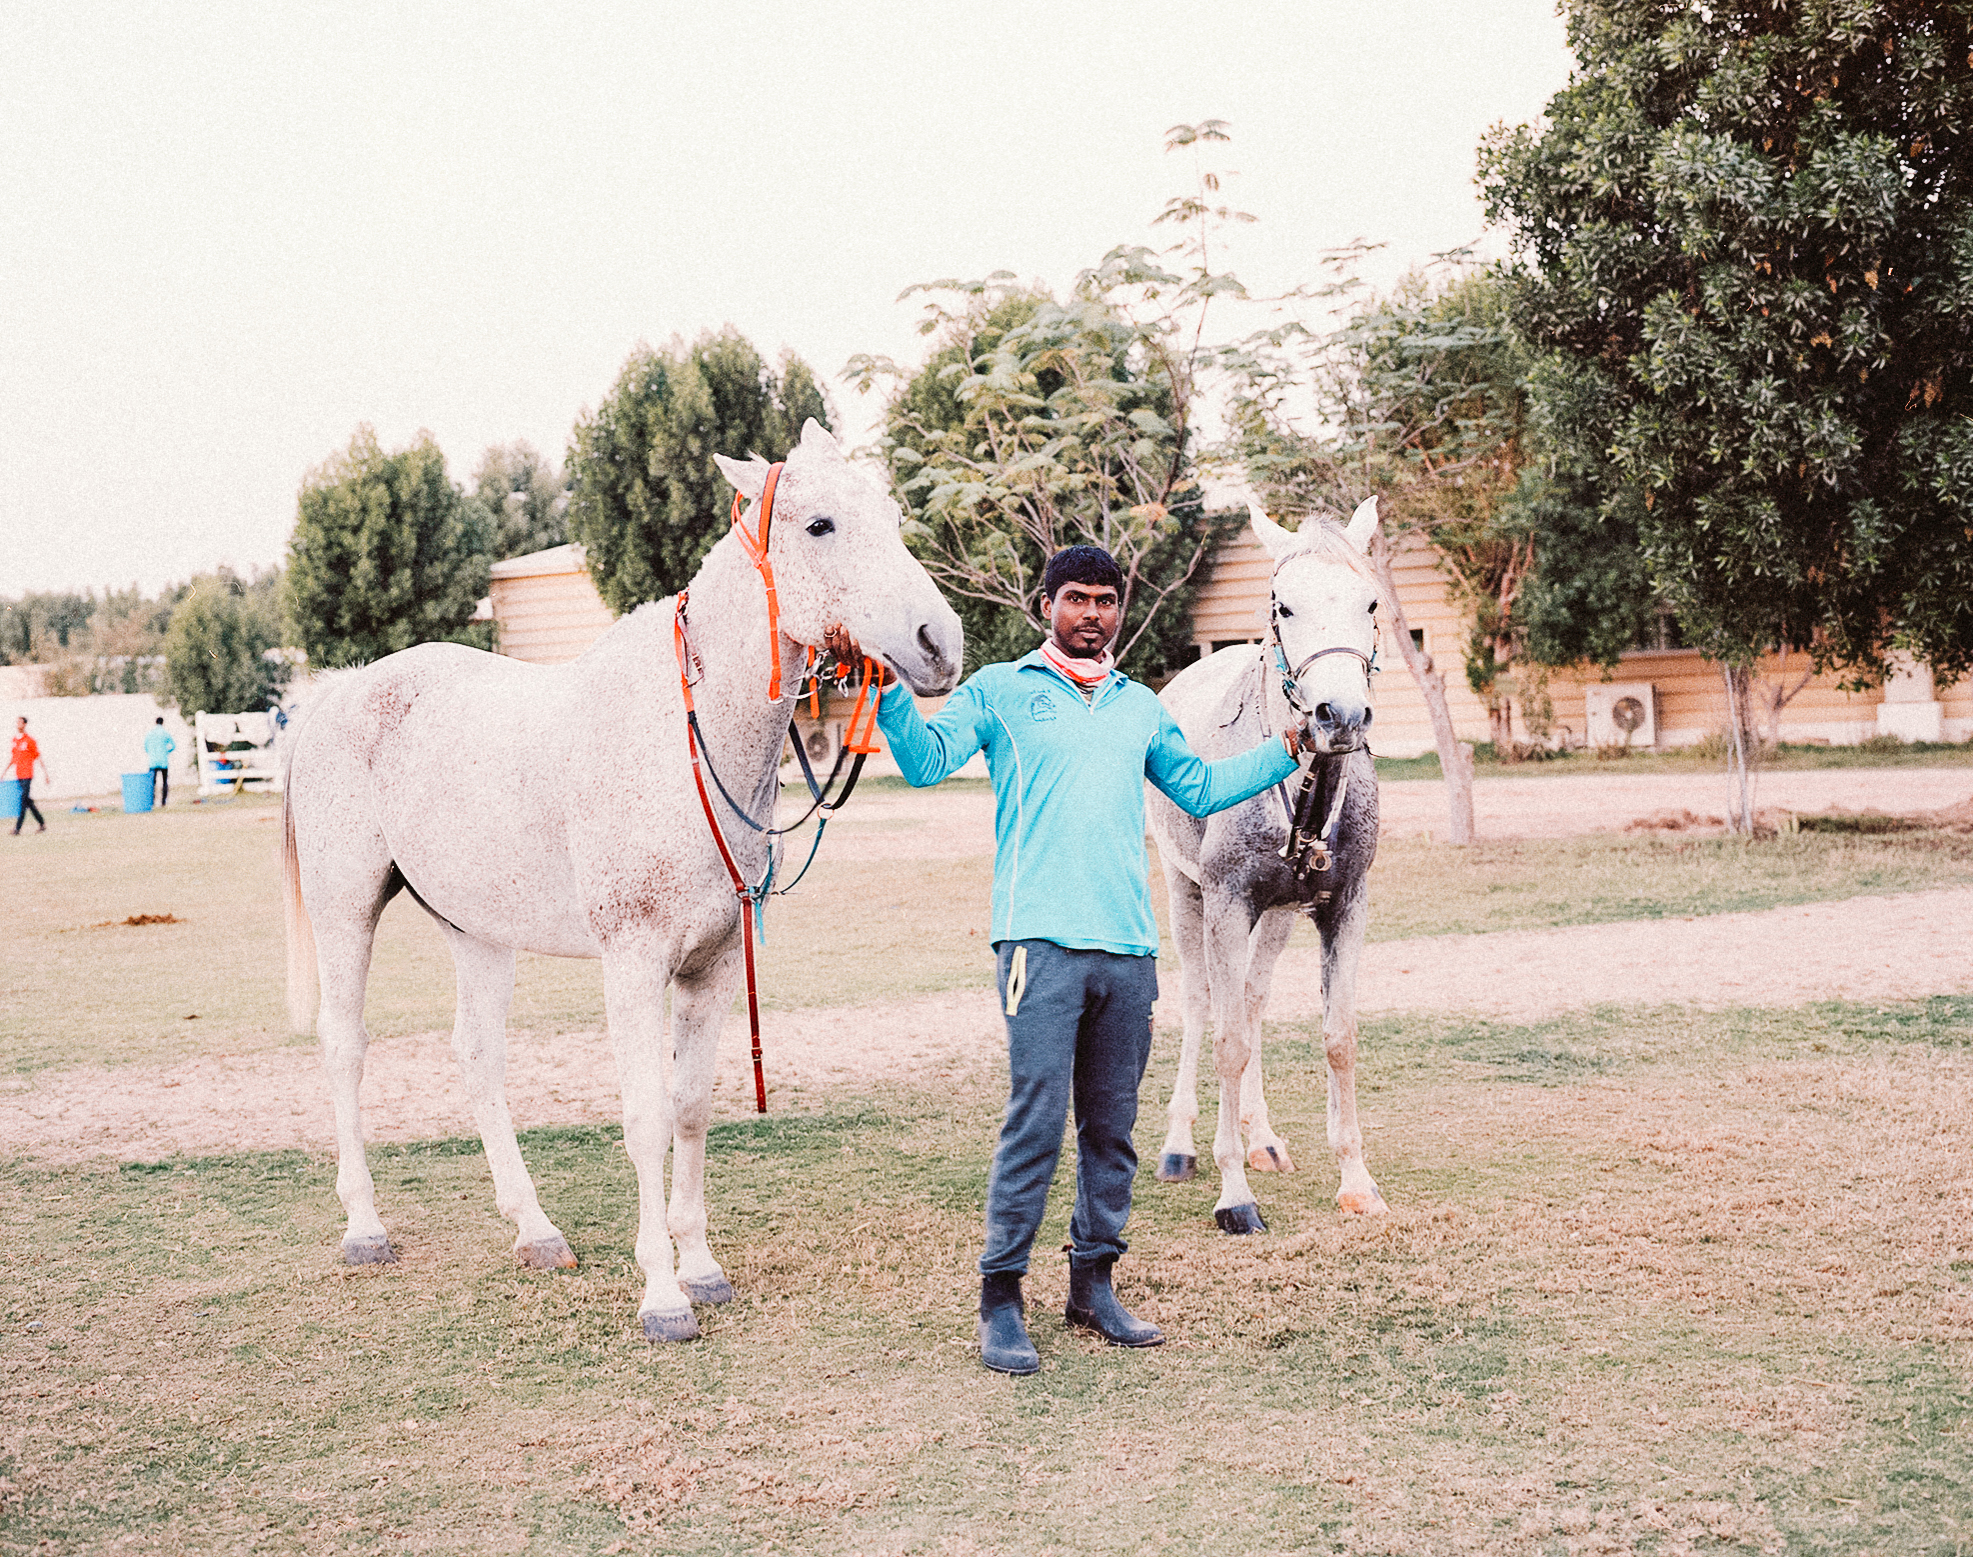 A Horseman from India working at a horse stables in Dubai, 2017